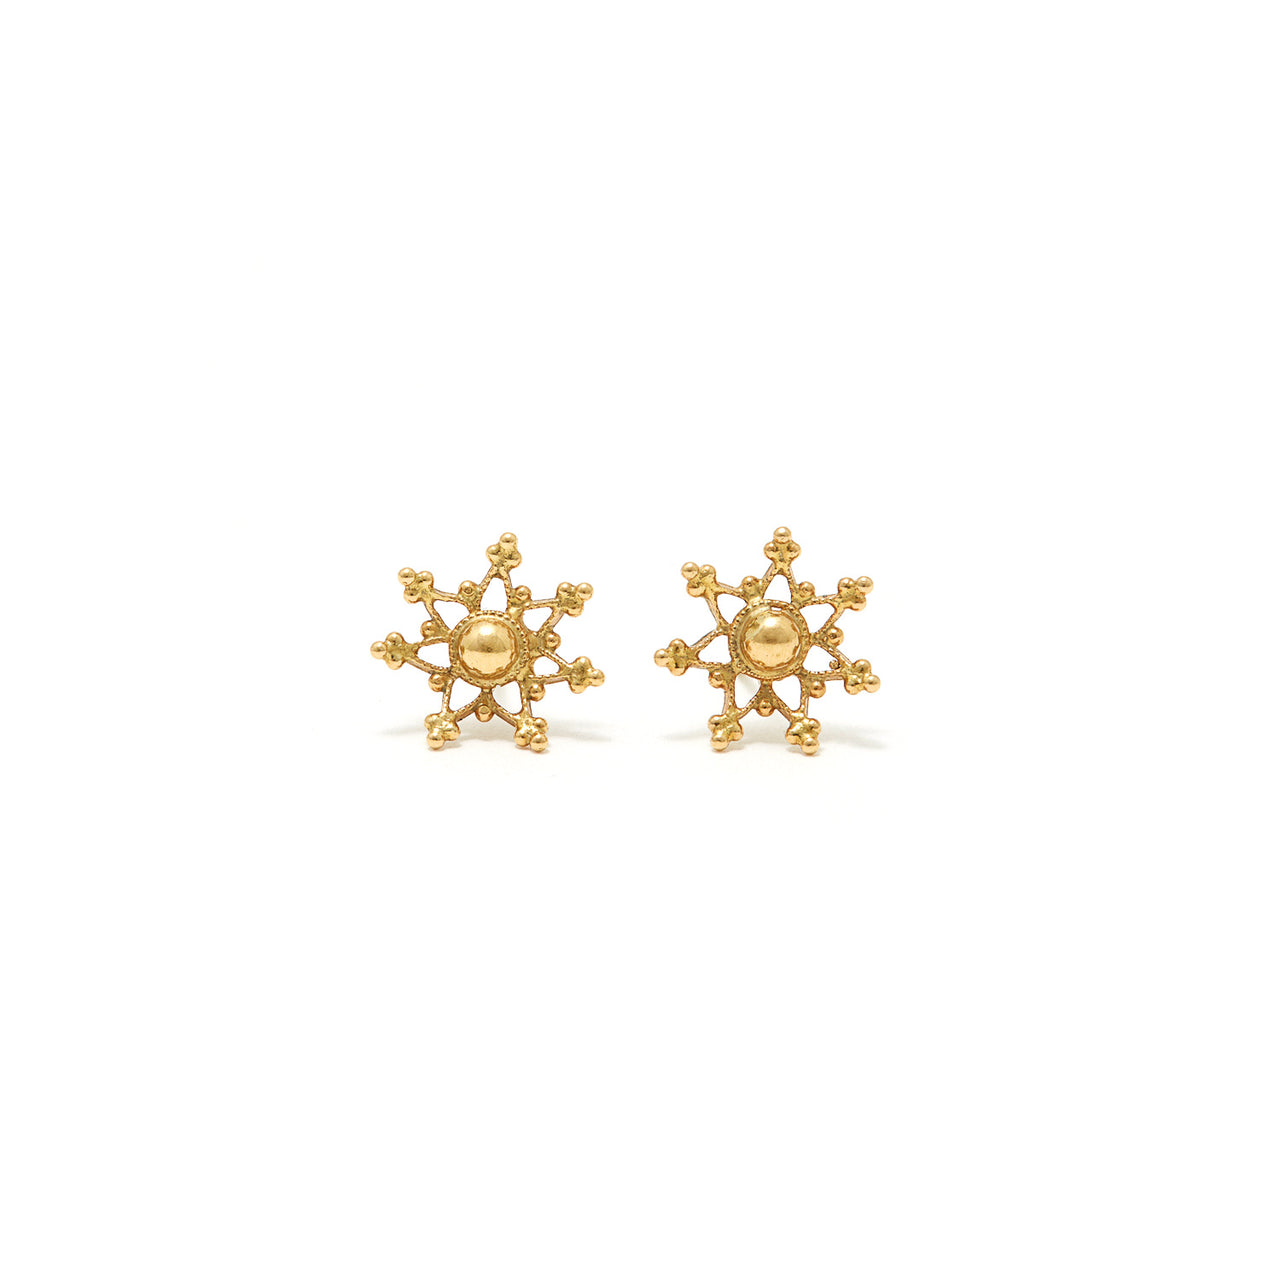 Rajasthani Star Gold Studs-Earrings-Jaipur Atelier